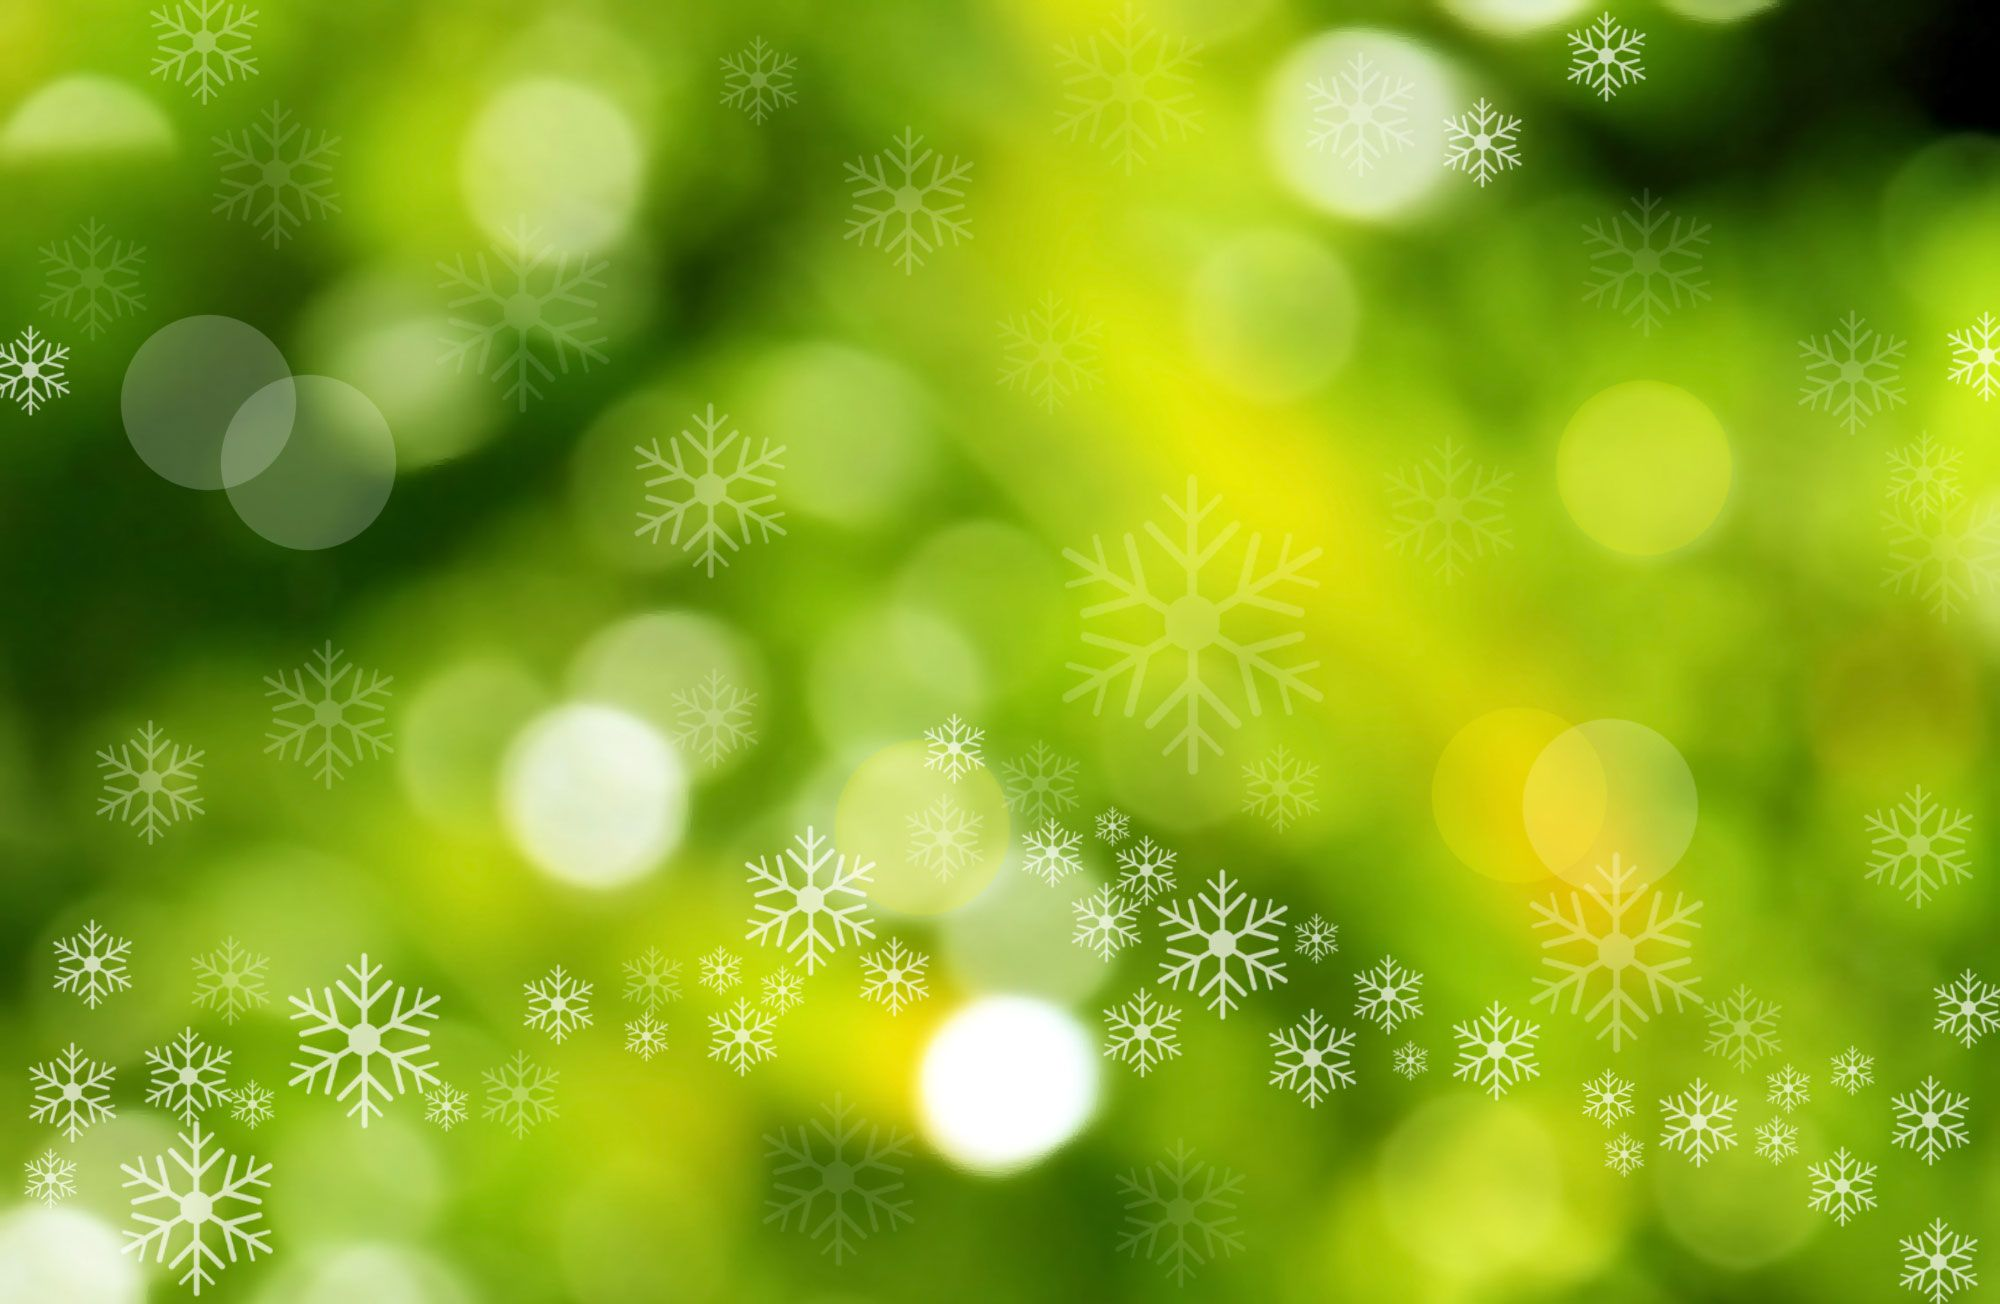 Holiday Backgrounds High Resolution 30927 Trendnet